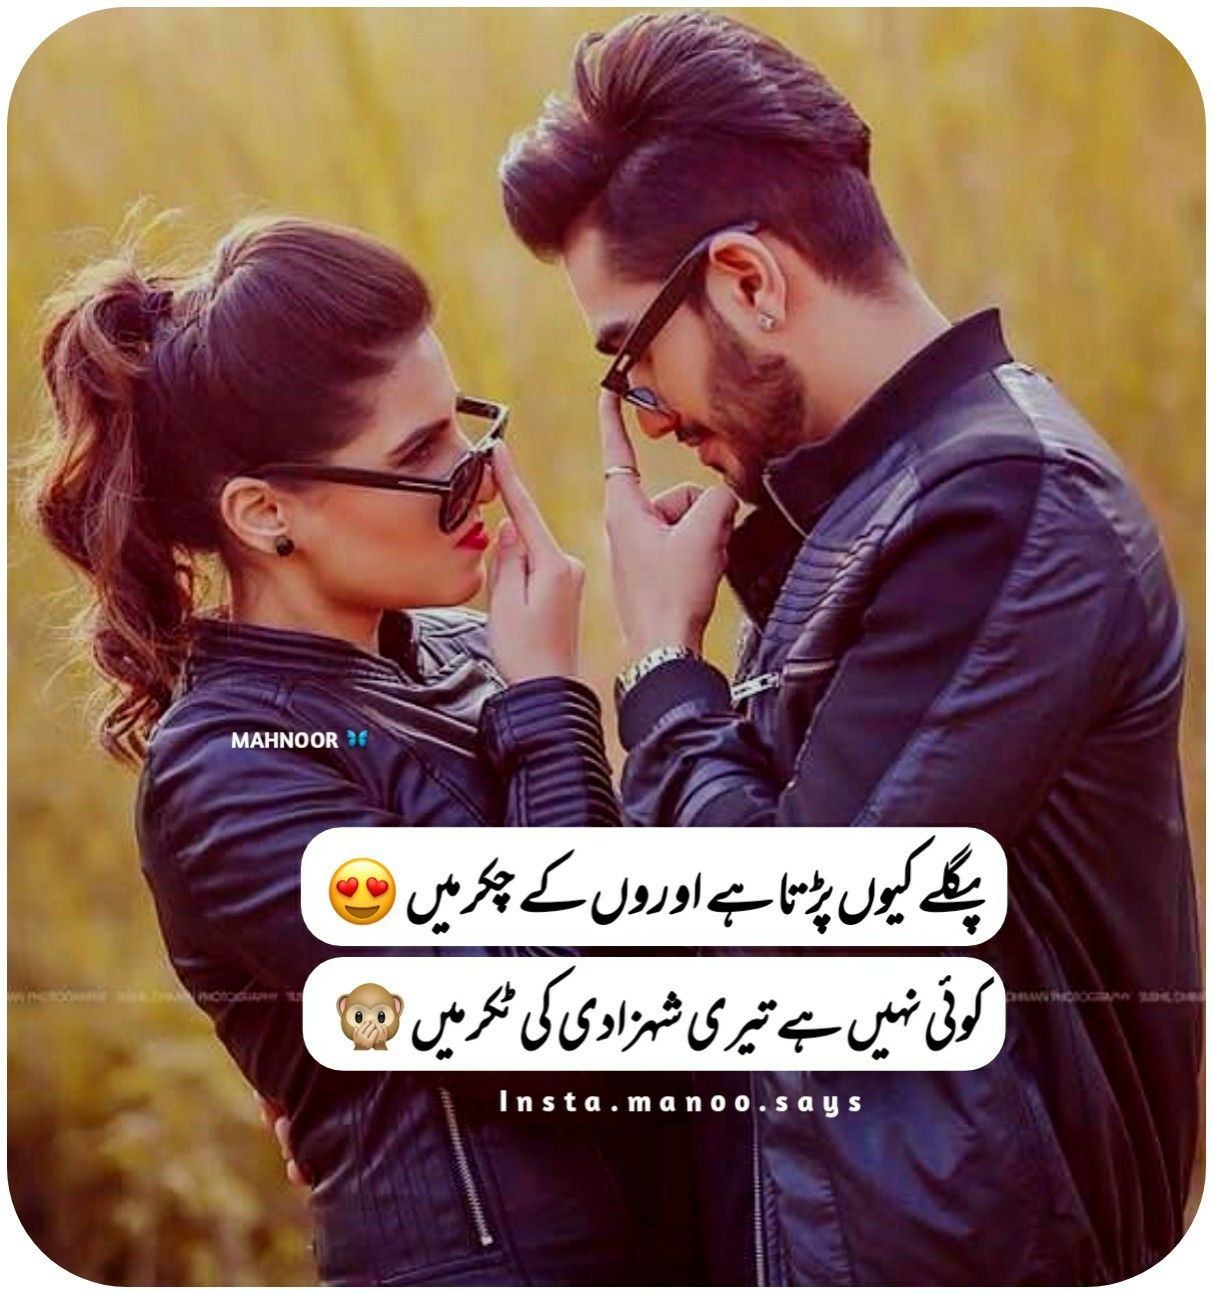 ❣️ best dating and love shayari in urdu images 2019